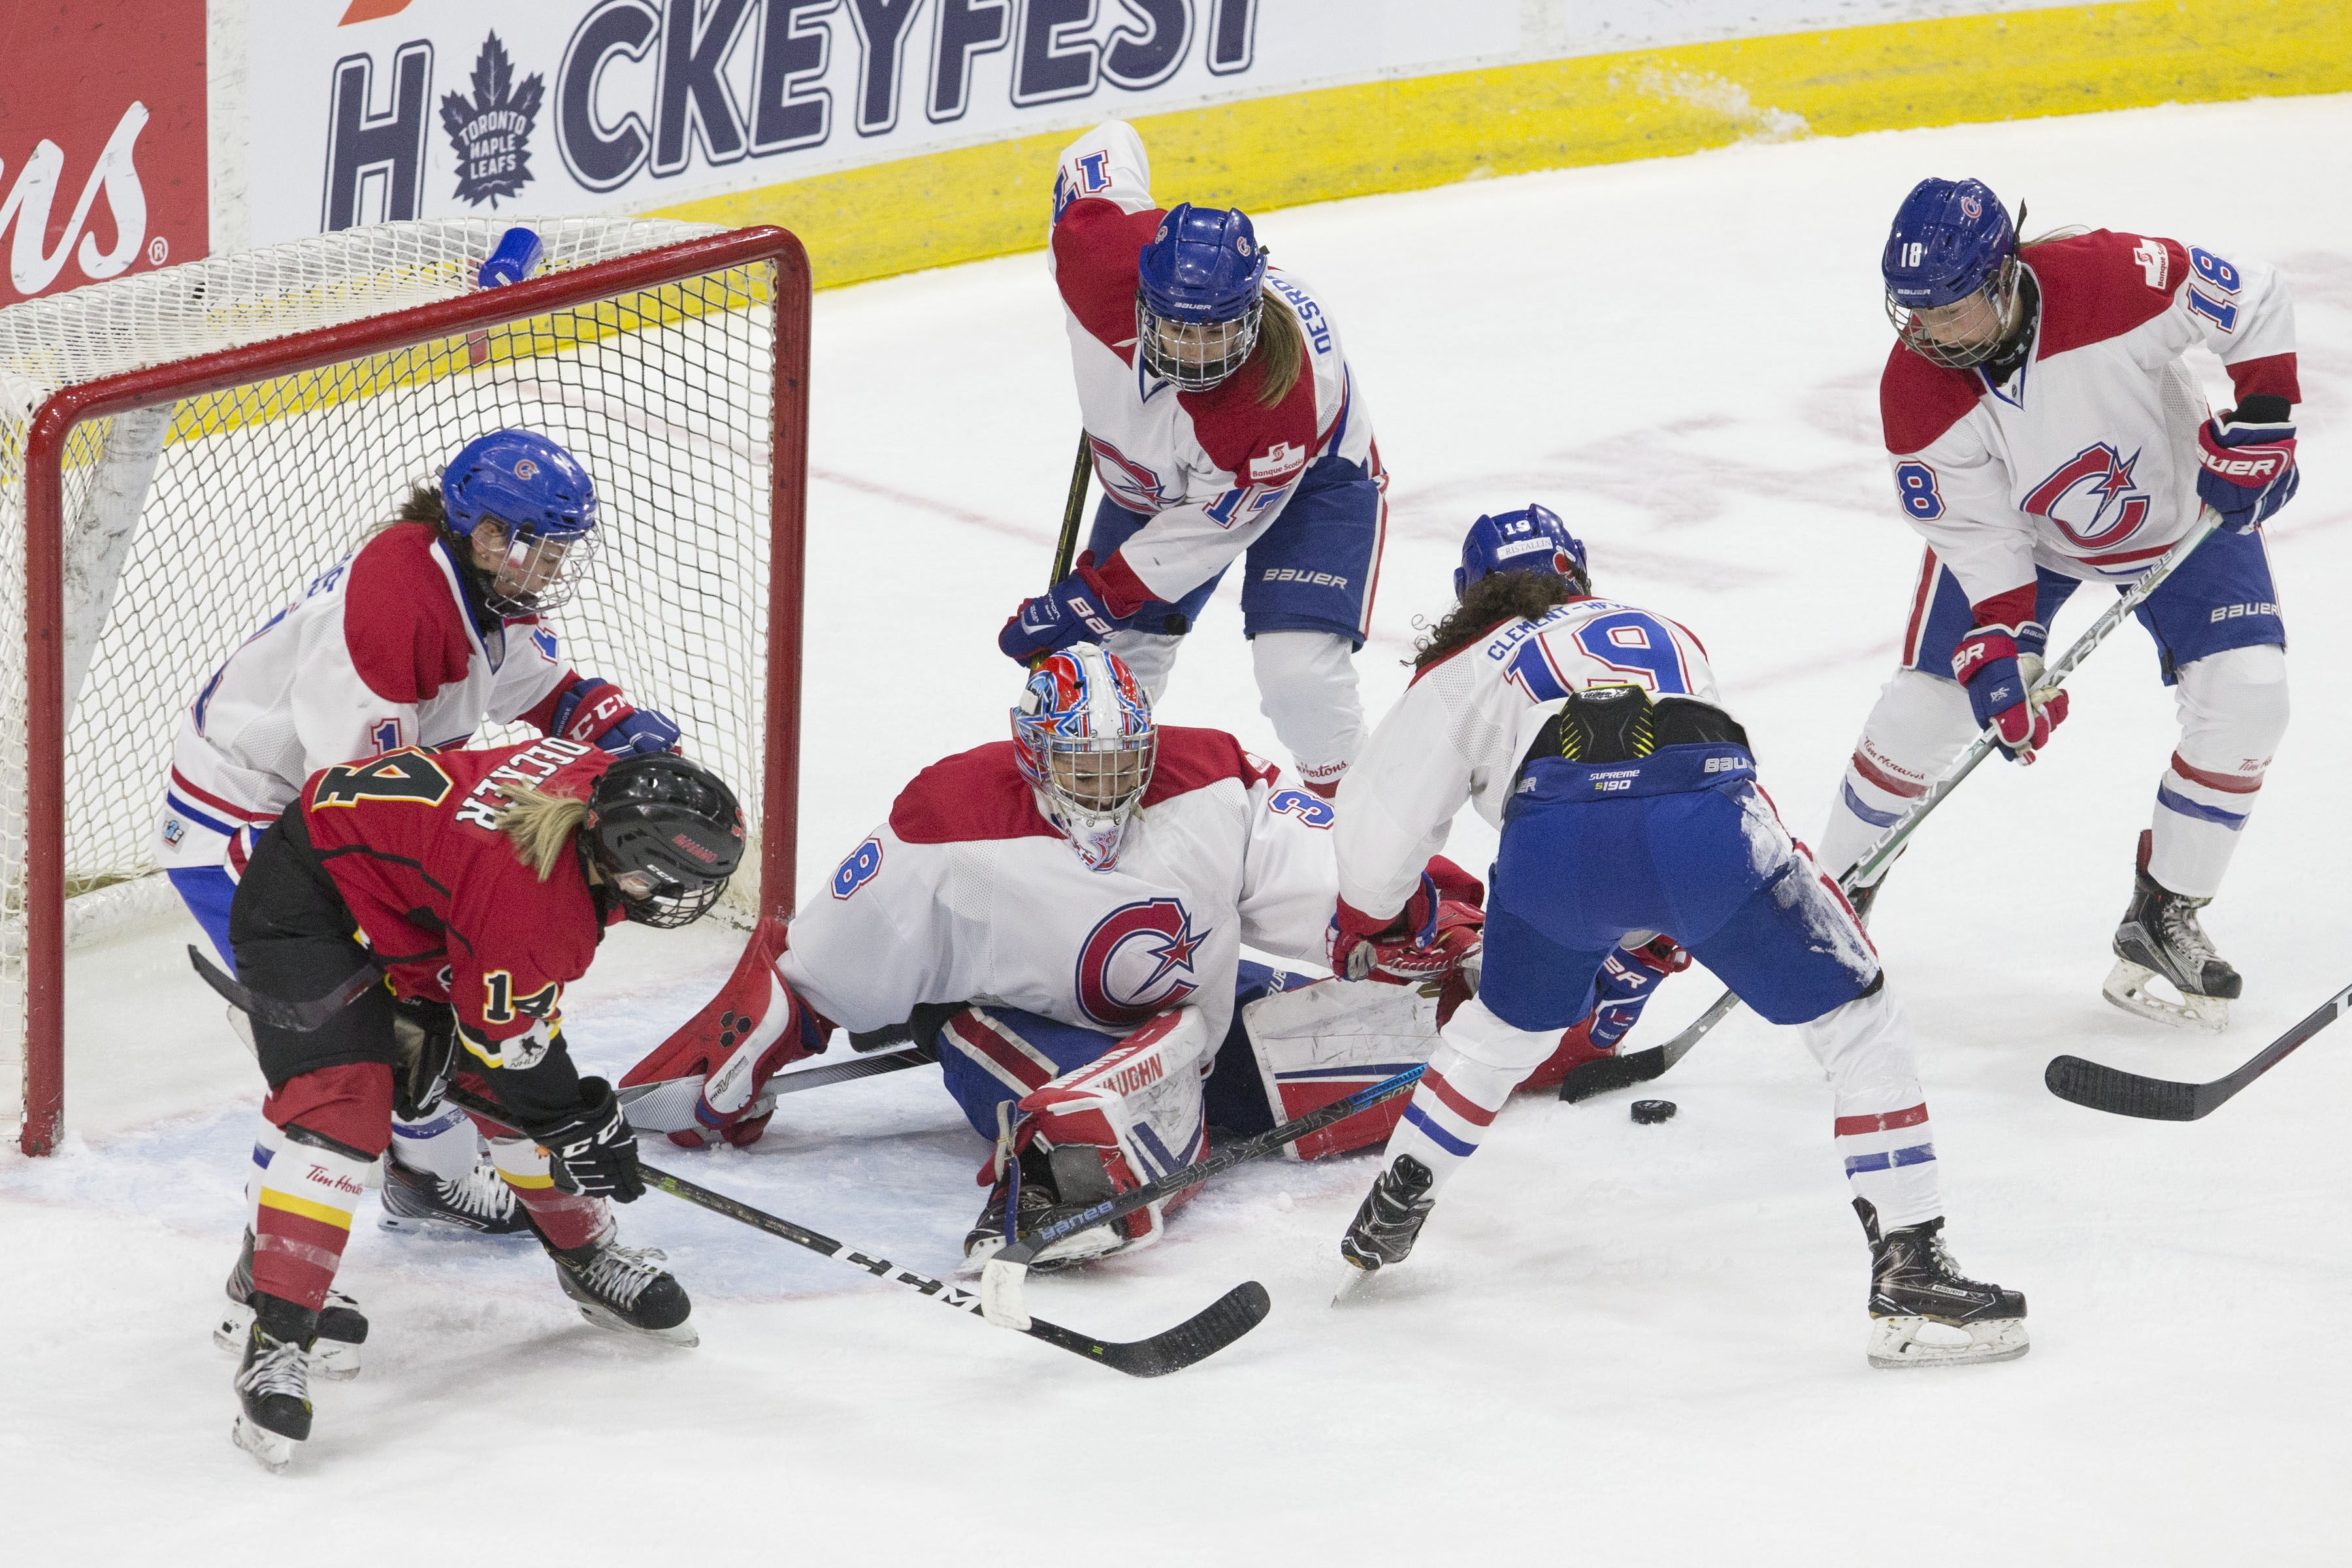 North American Women S Ice Hockey Players Struggle For A League Of